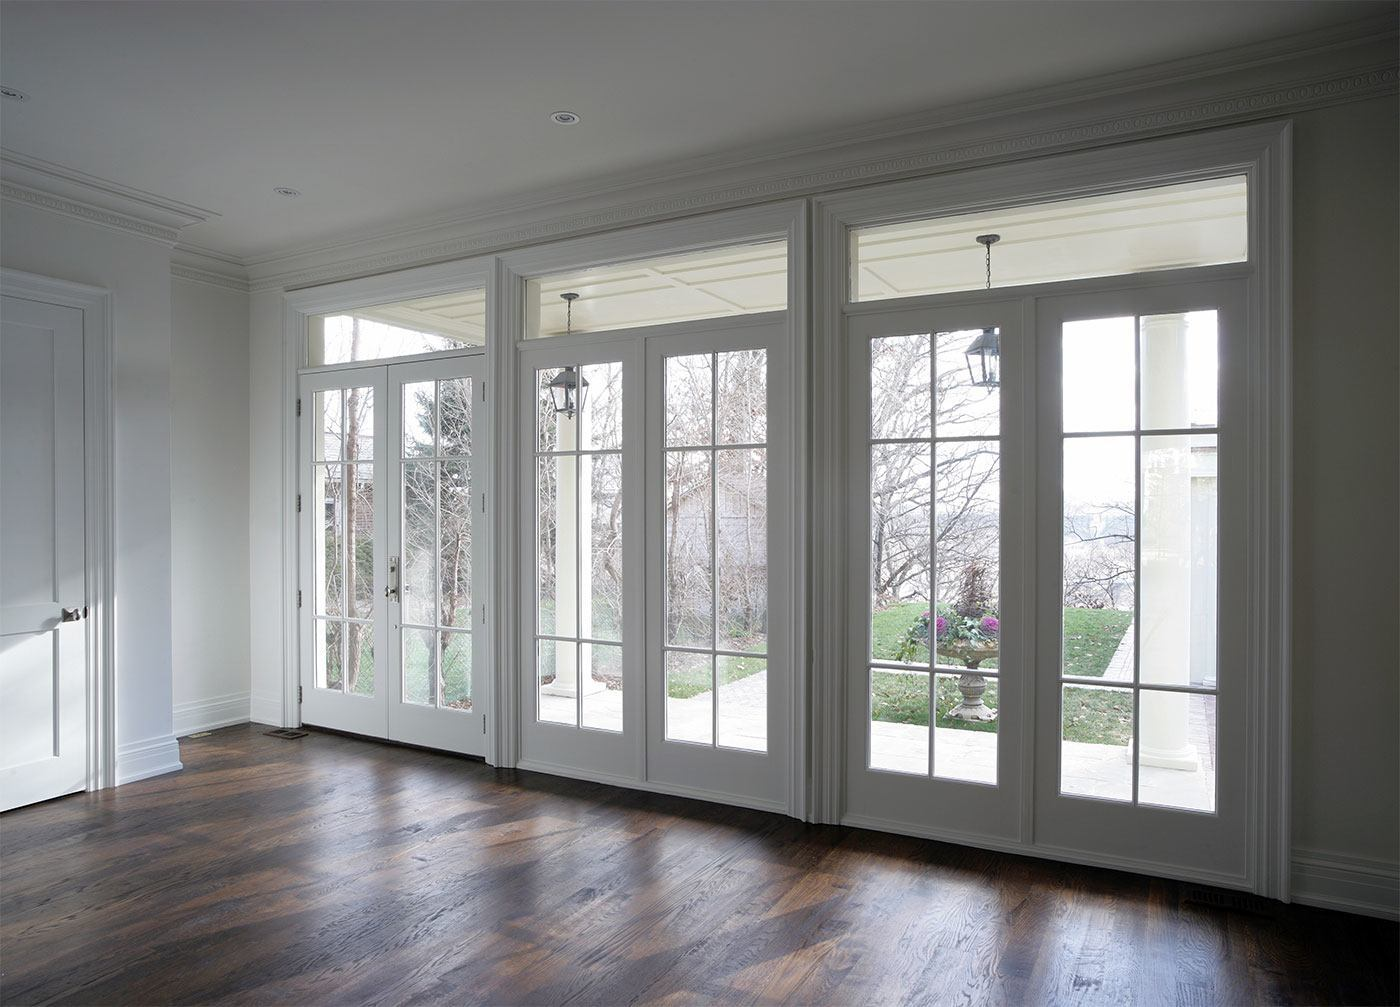 High Security Double Handled French Doors From South